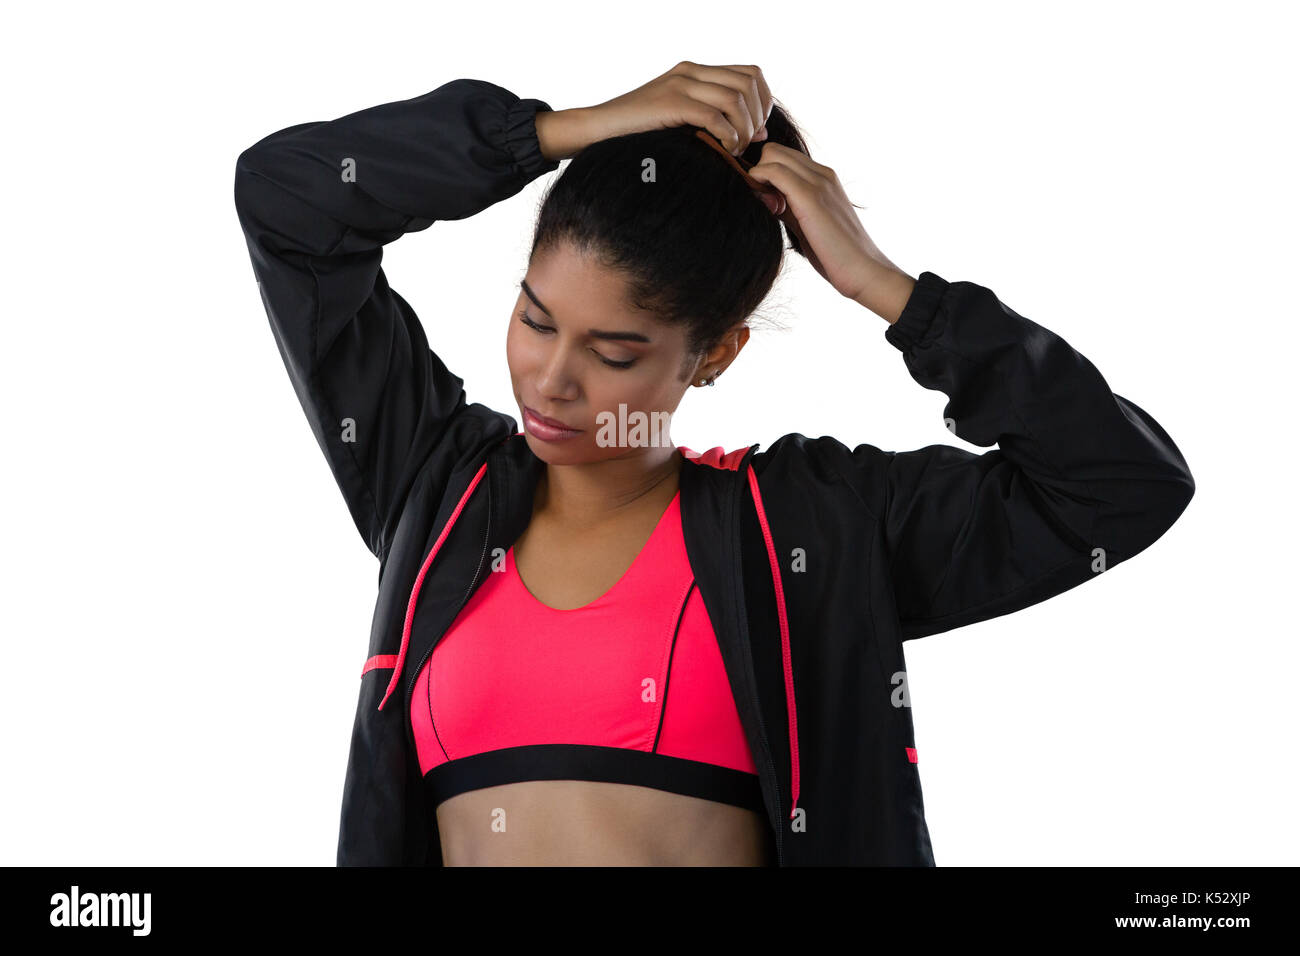 Female athlete tying hair while standing against white background - Stock Image